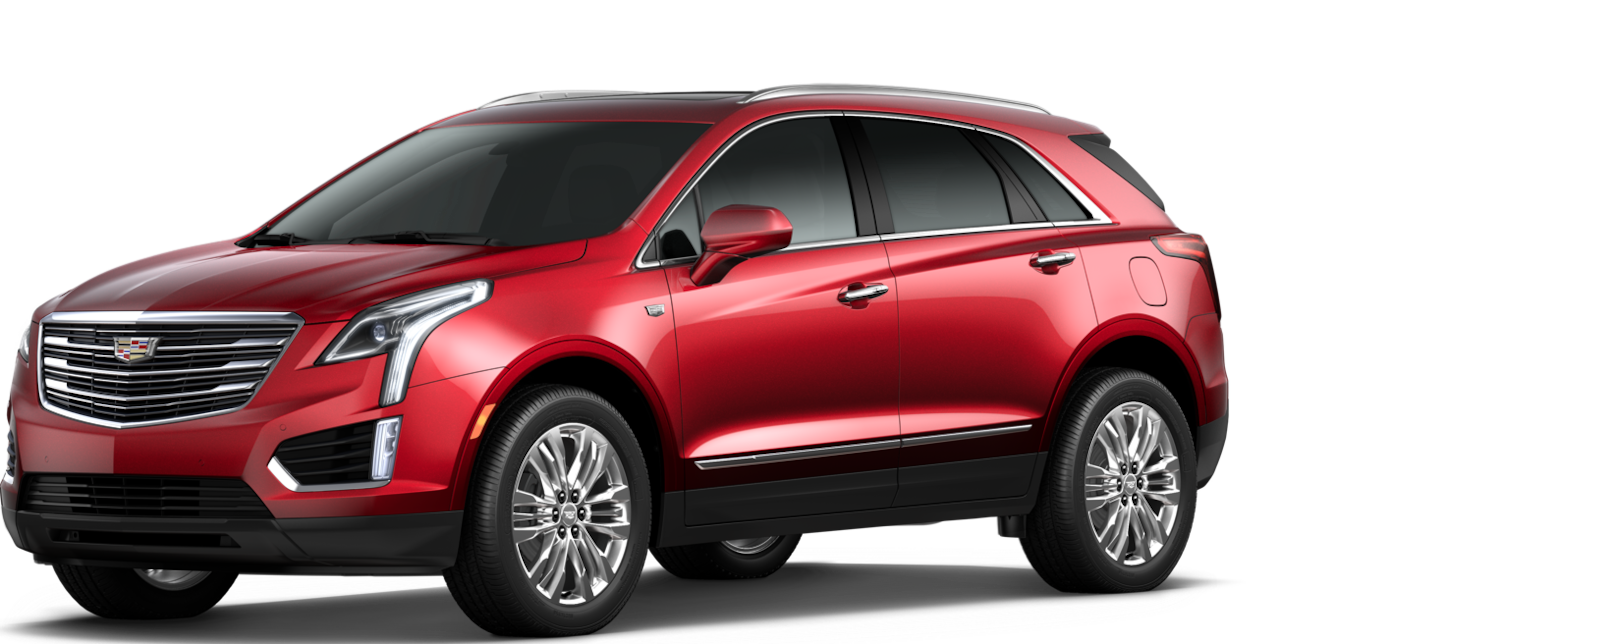 90 The 2019 Cadillac XT5 Images